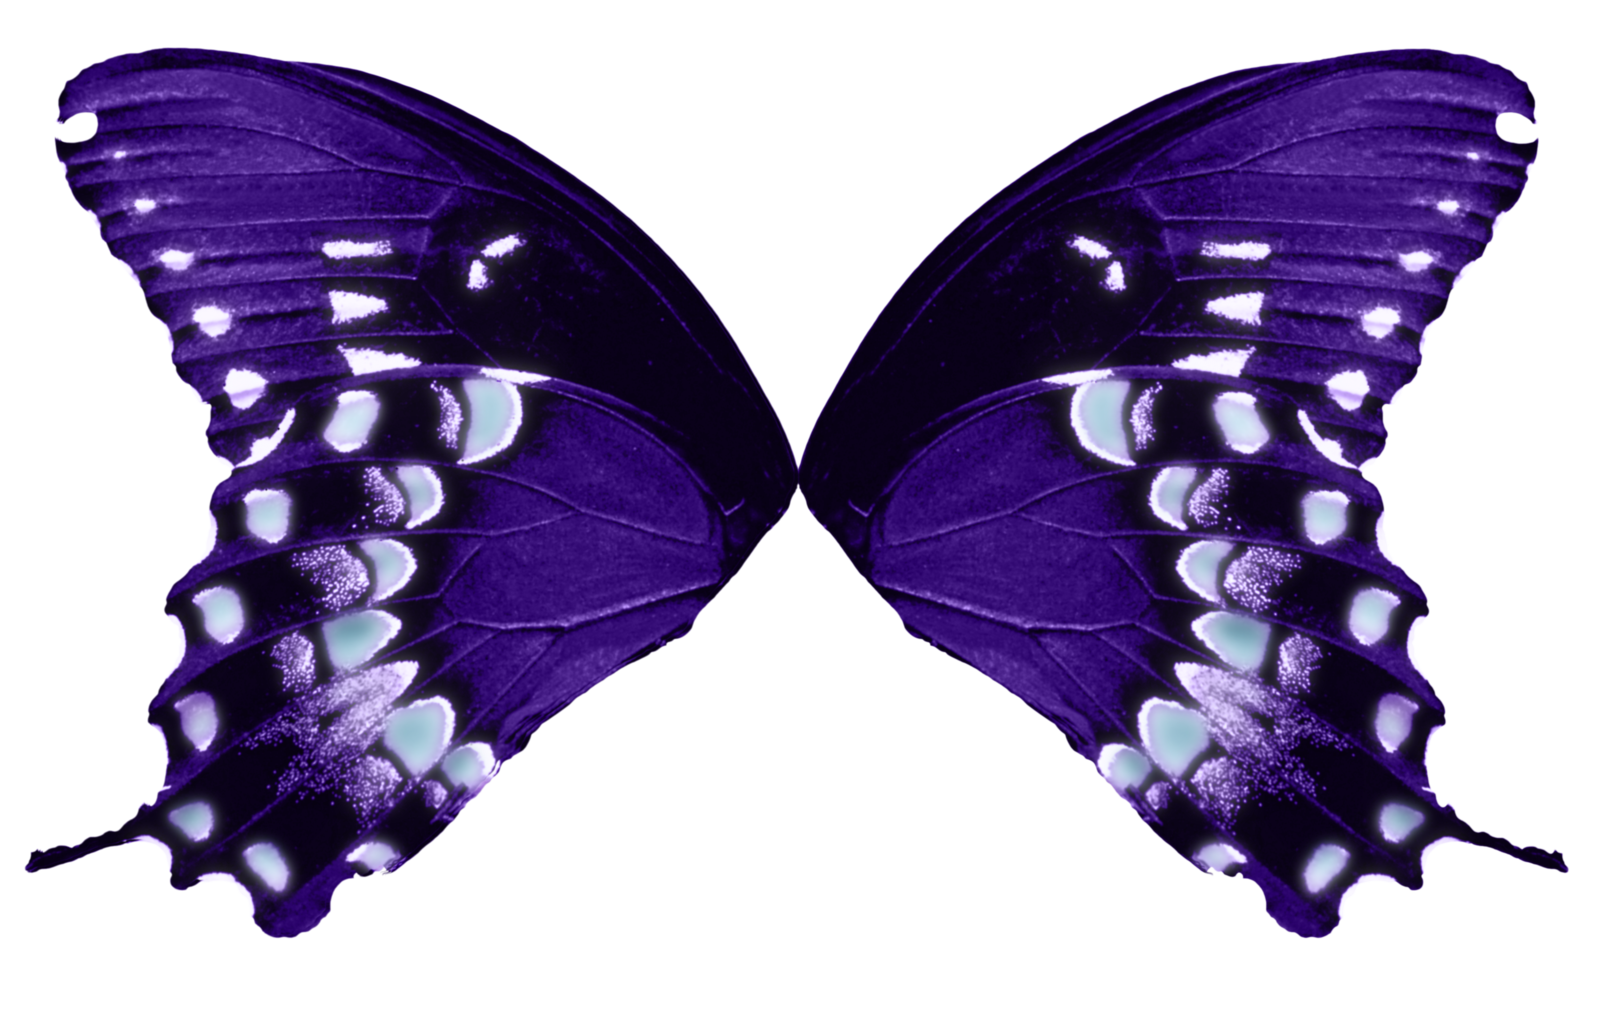 Moth clipart transparent tumblr. Butterfly wings purple aqua